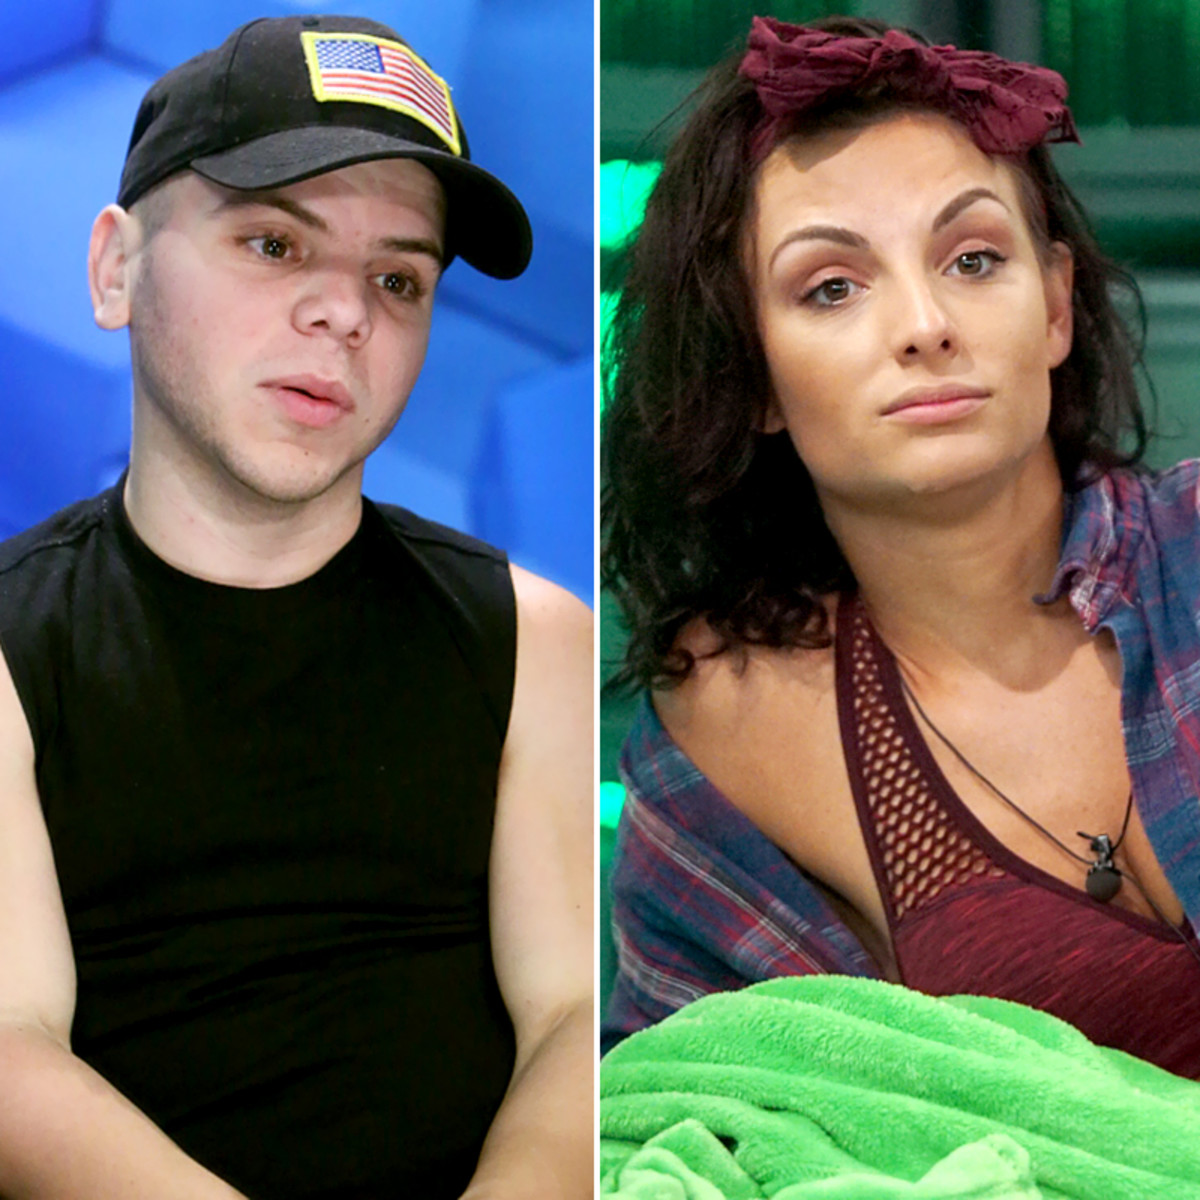 'Big Brother 20': JC Mounduix Comes Under Fire for Asking Rachel Swindler If She Is a Real Girl